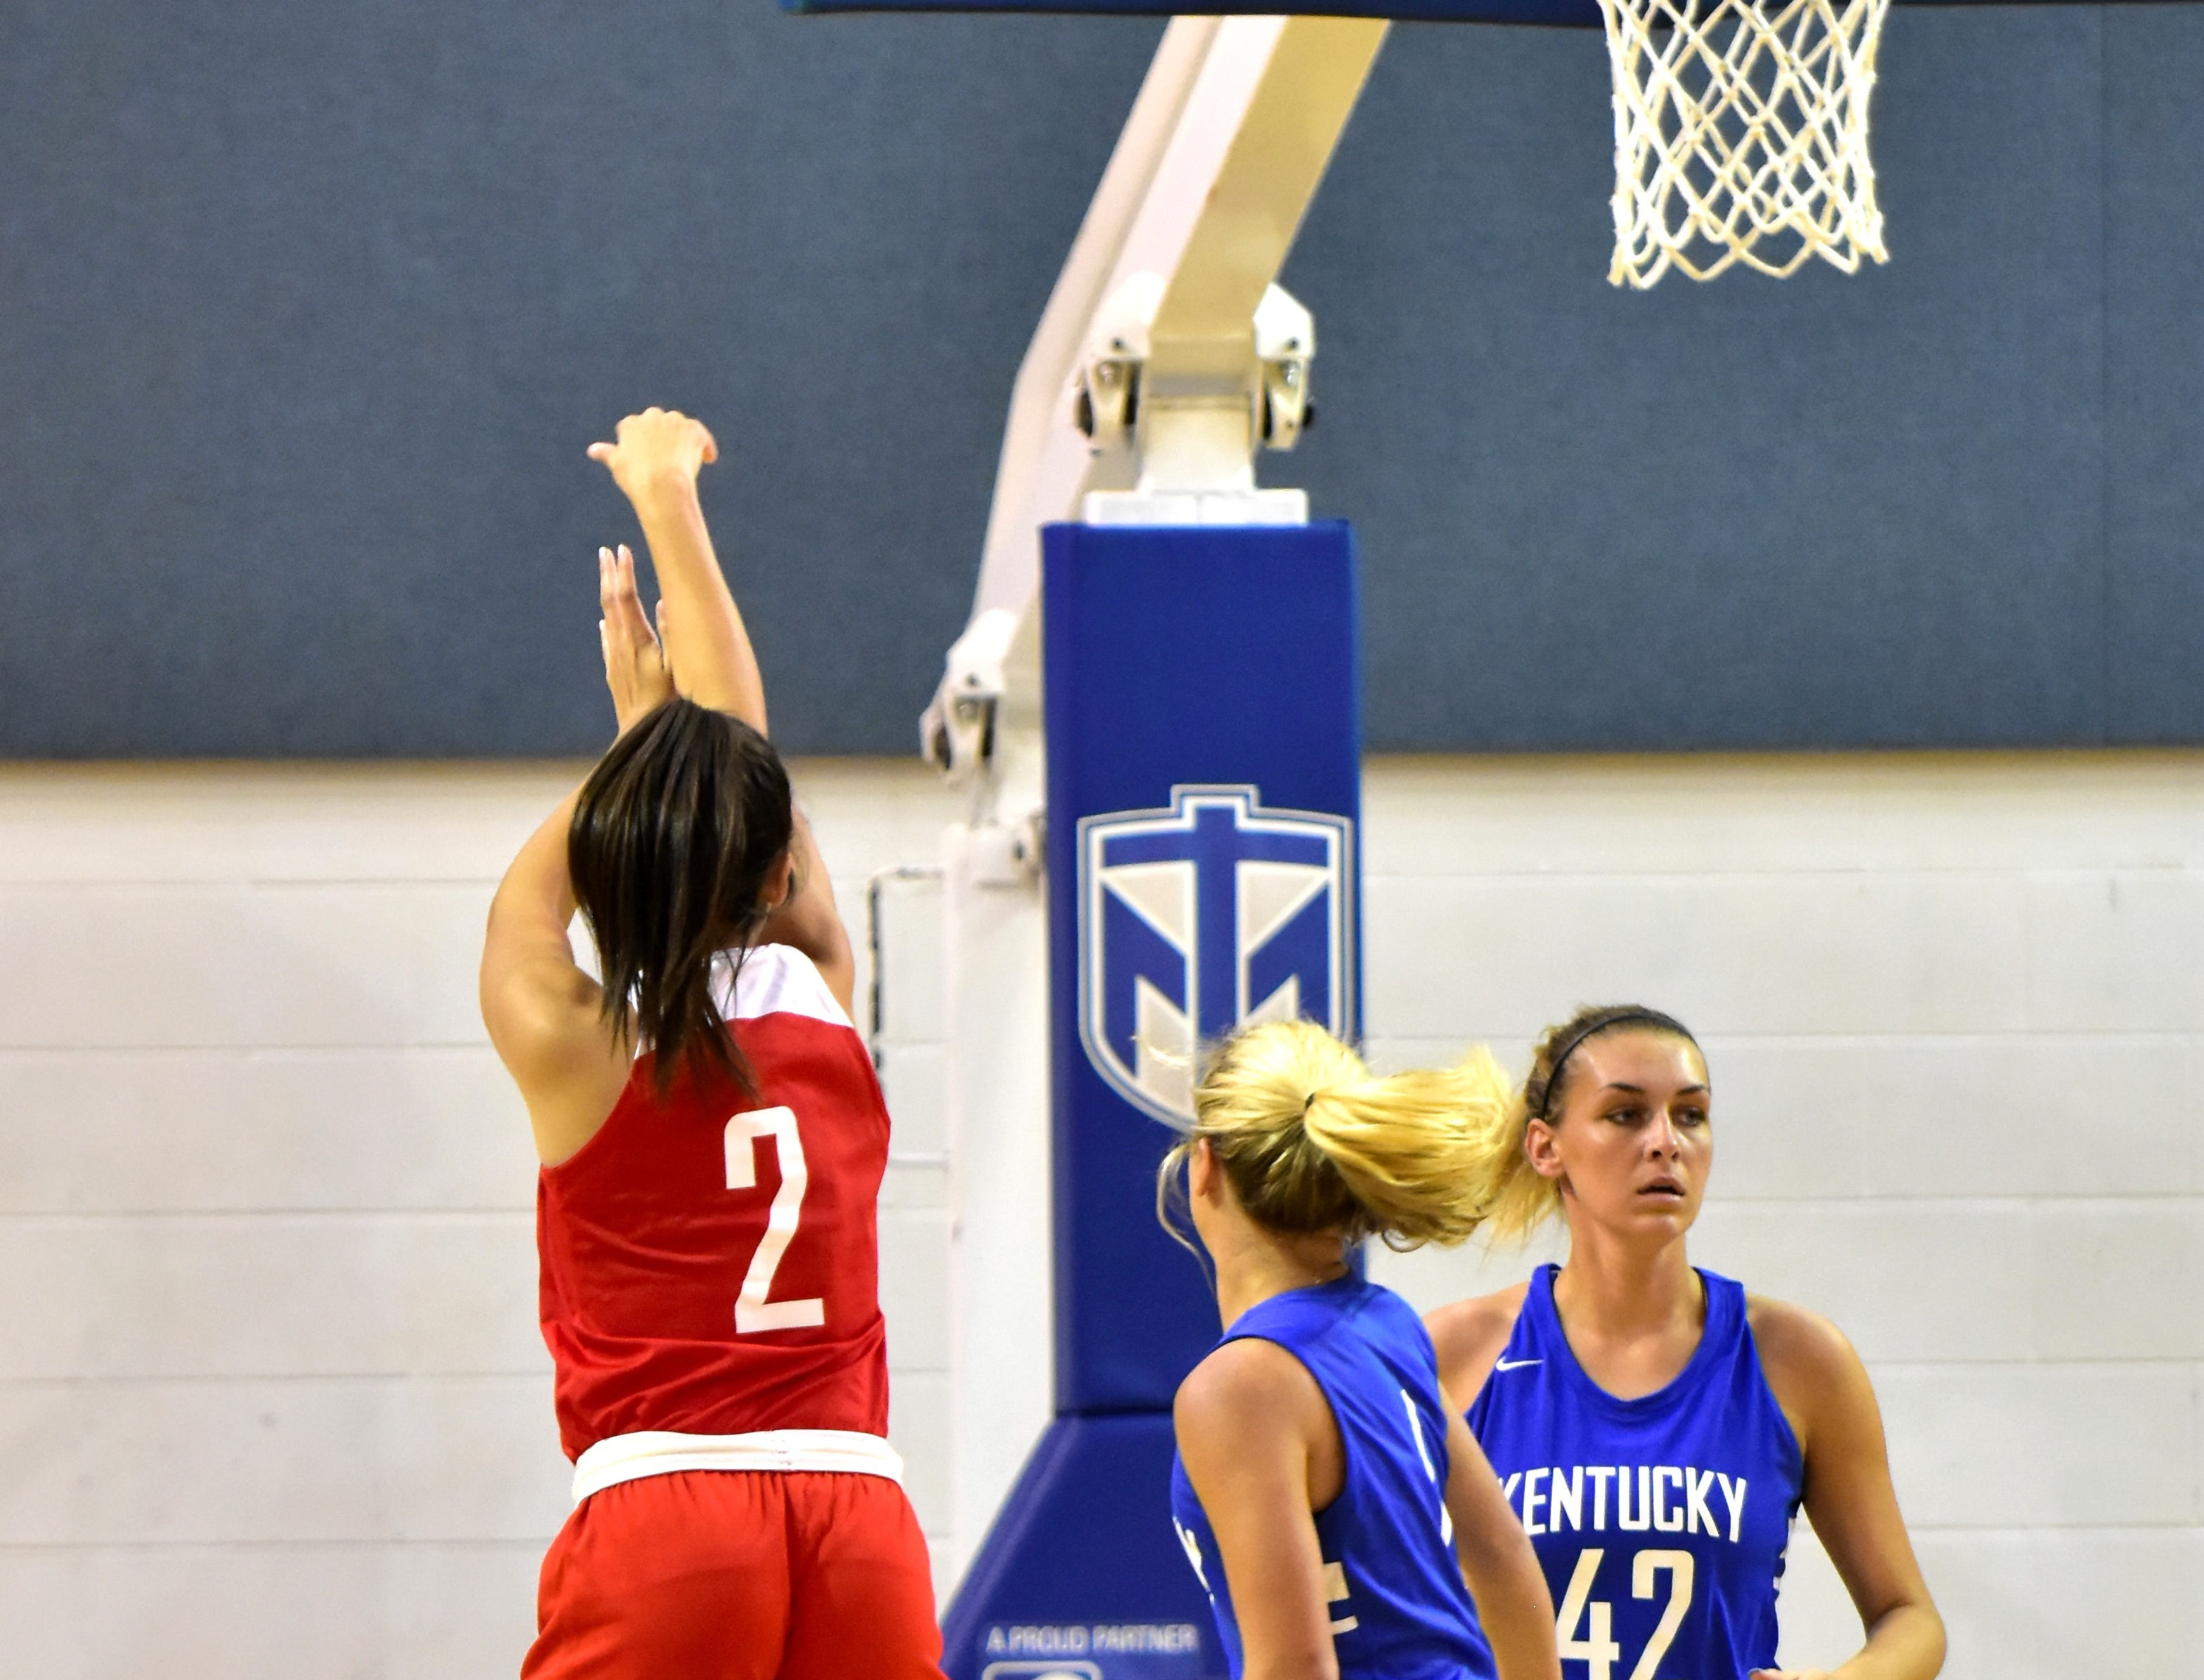 Gabbie Marshall (2) of Mount Notre Dame drains a three-pointer for the Ohio girls team at the 28th Annual Ohio-Kentucky All-Star games played at Thomas More University, April 13, 2019